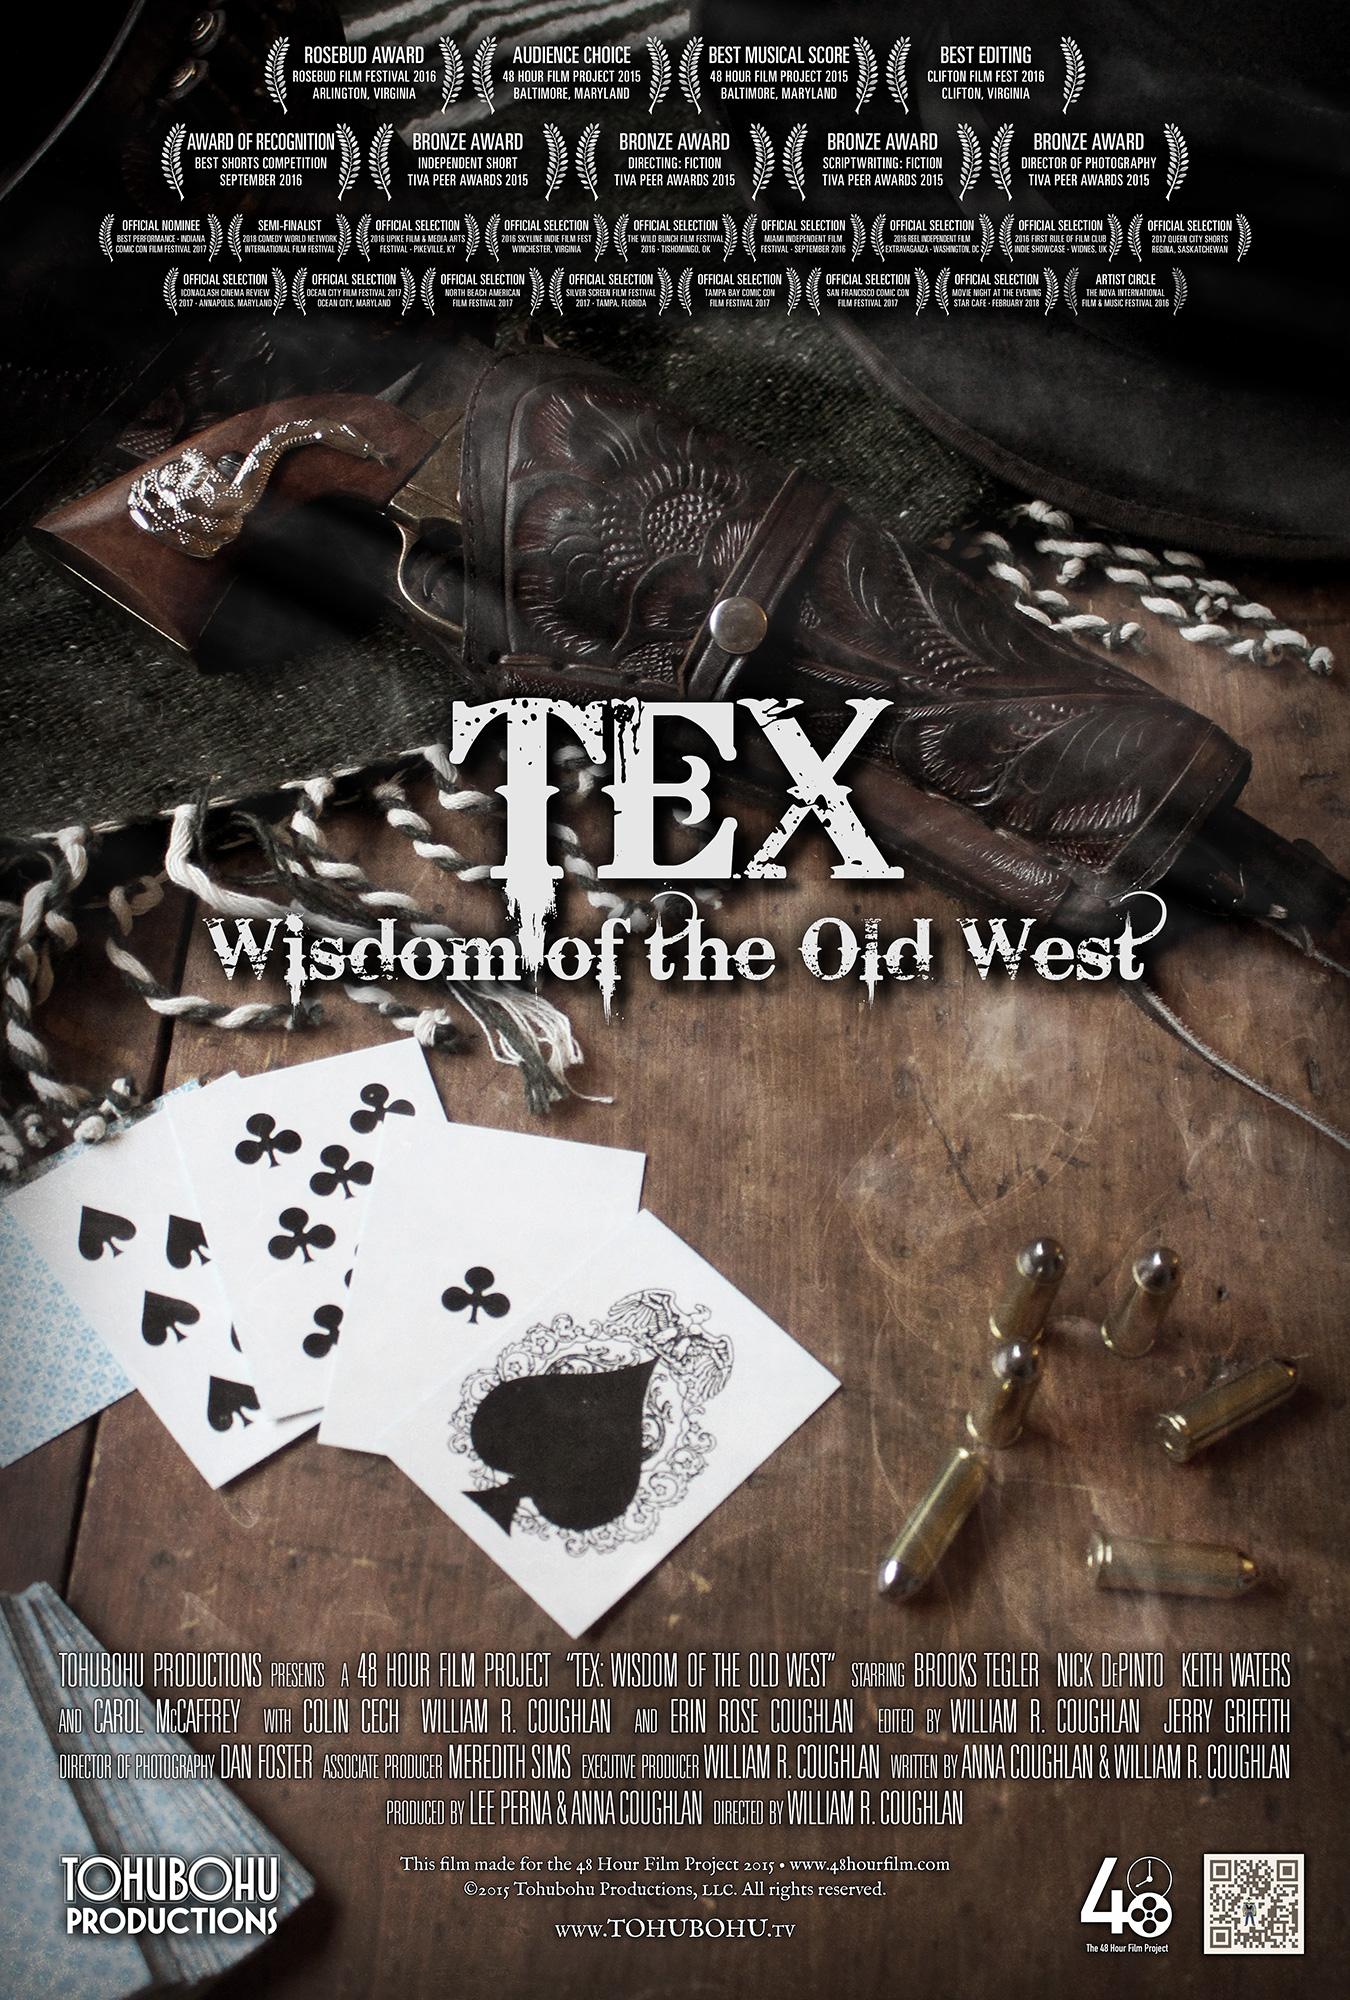 """Tex: Wisdom of the Old West - 2015 · 6:51 · written by Anna Coughlan & William R. Coughlan · produced by Lee Perna & Anna Coughlan · directed by William R. CoughlanQuentin has a problem: one of his neighbors is gradually taking over the community garden, pushing everyone else out and consolidating her claim. His friend Brent is pushing him to confront the offender, but Quentin seeks the wisdom of Tex — a genuine Old West gunslinger who just happens to find himself in the modern era.Tohubohu — now equipped with a largely portable postproduction setup — competed for the first time in the Baltimore 48 Hour Film Project with """"Tex"""" — a comedic modern interpretation of the classic western. The film was created entirely between June 12th through the 14th, 2015, and premiered at the Charles Theatre on Tuesday, June 23rd, earning both an Audience Choice Award and Best Musical Score recognition."""